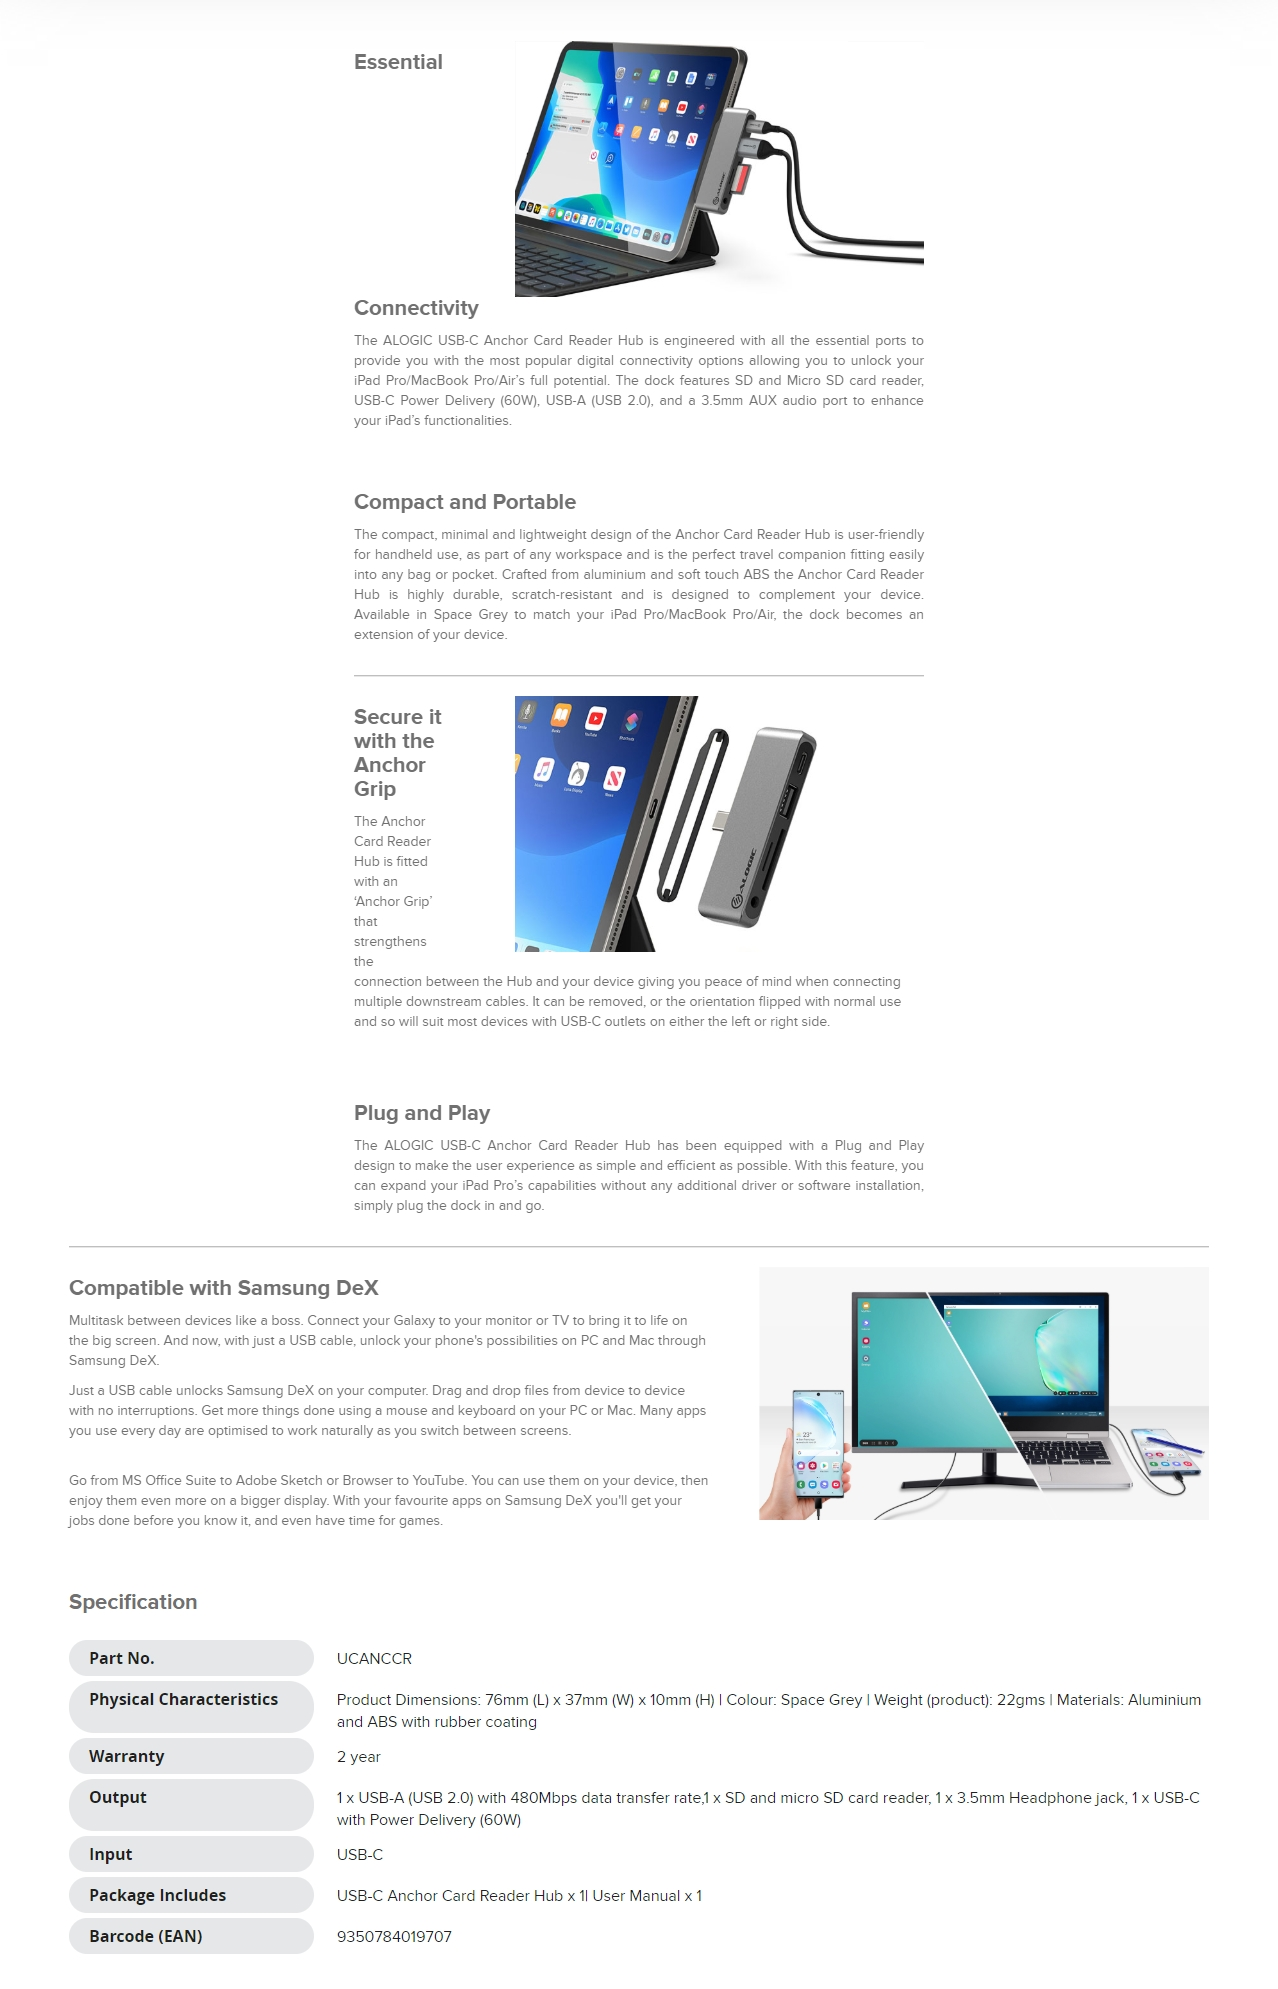 A large marketing image providing additional information about the product ALOGIC USB Type-C Anchor 5-in-1 Card Reader Hub - Additional alt info not provided